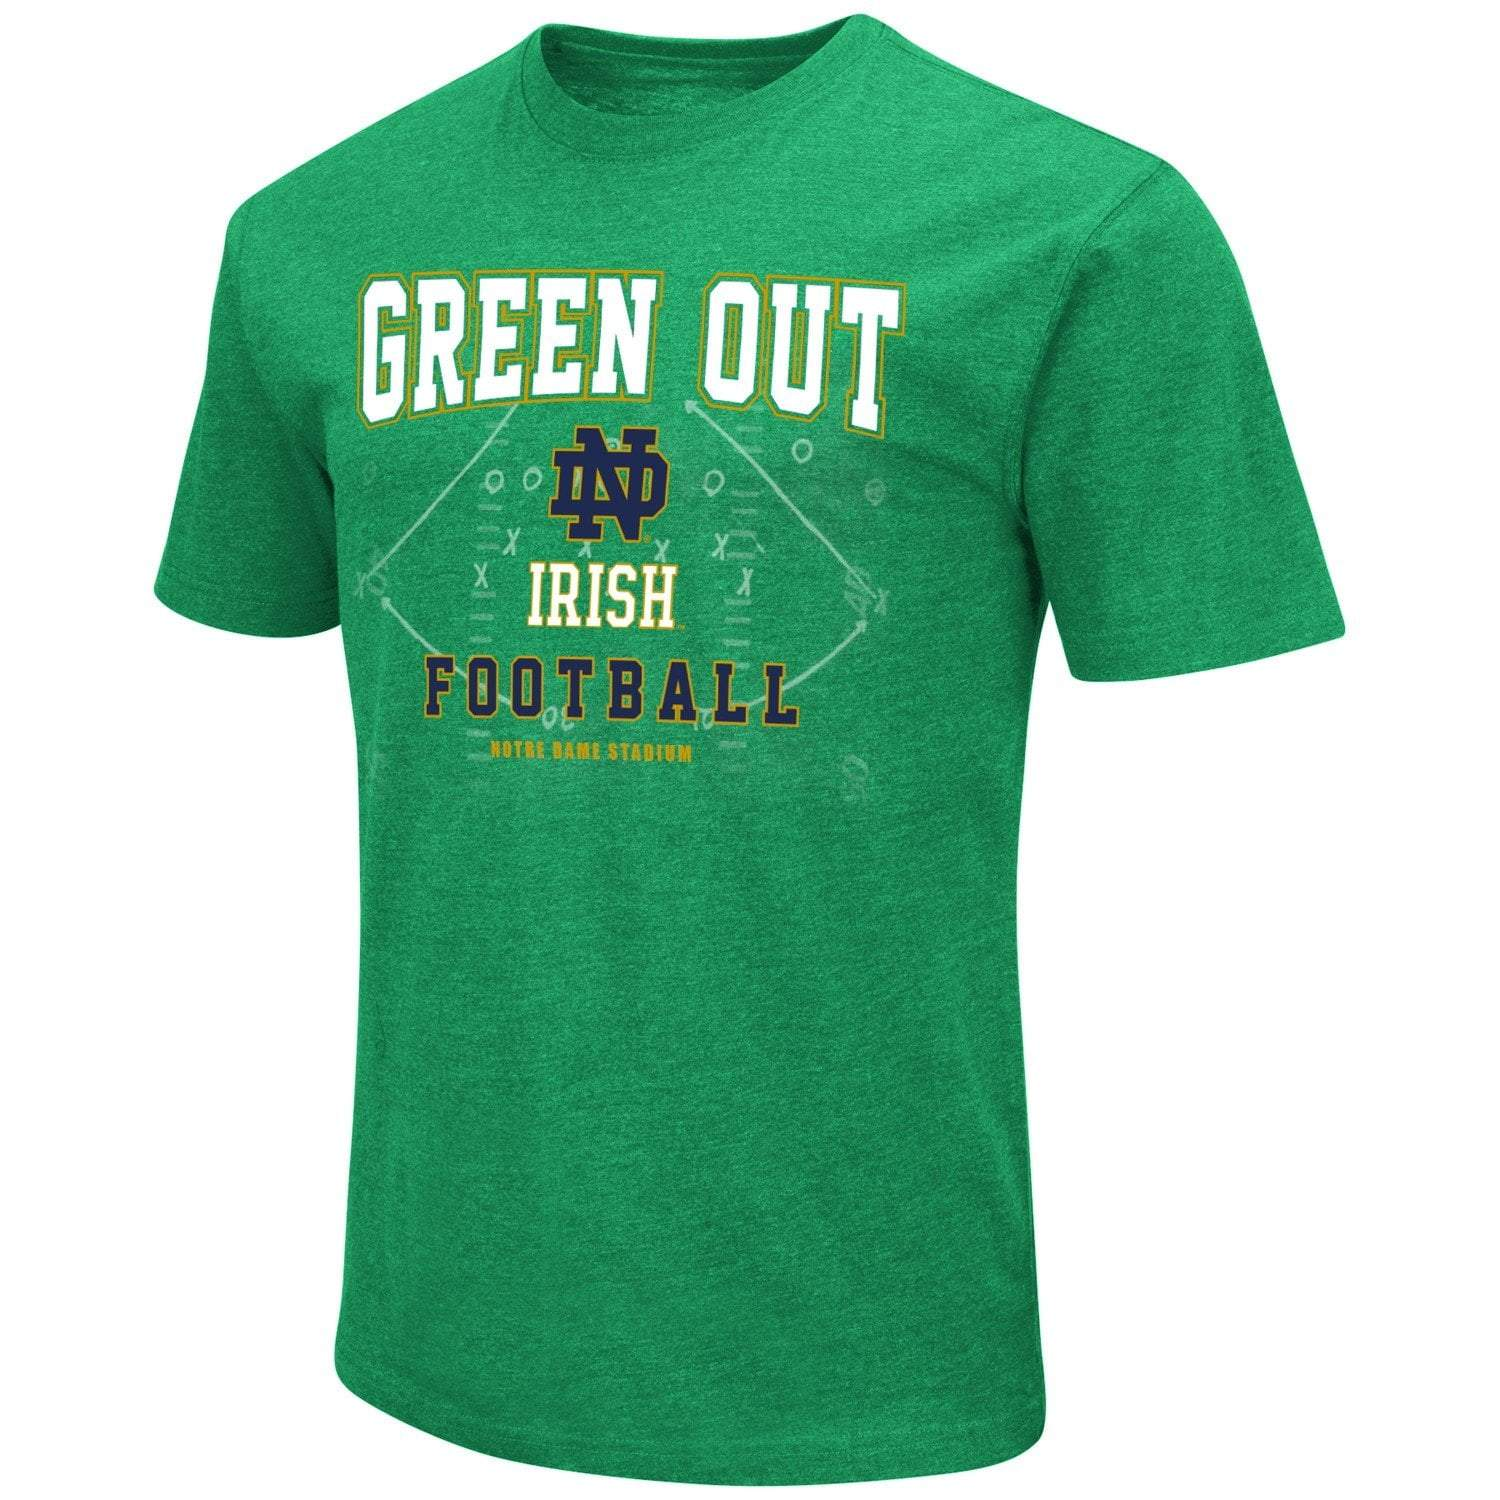 """Notre Dame Fighting Irish Colosseum Kelly Green Football """"Green Out"""" T-Shirt - L / Green"""